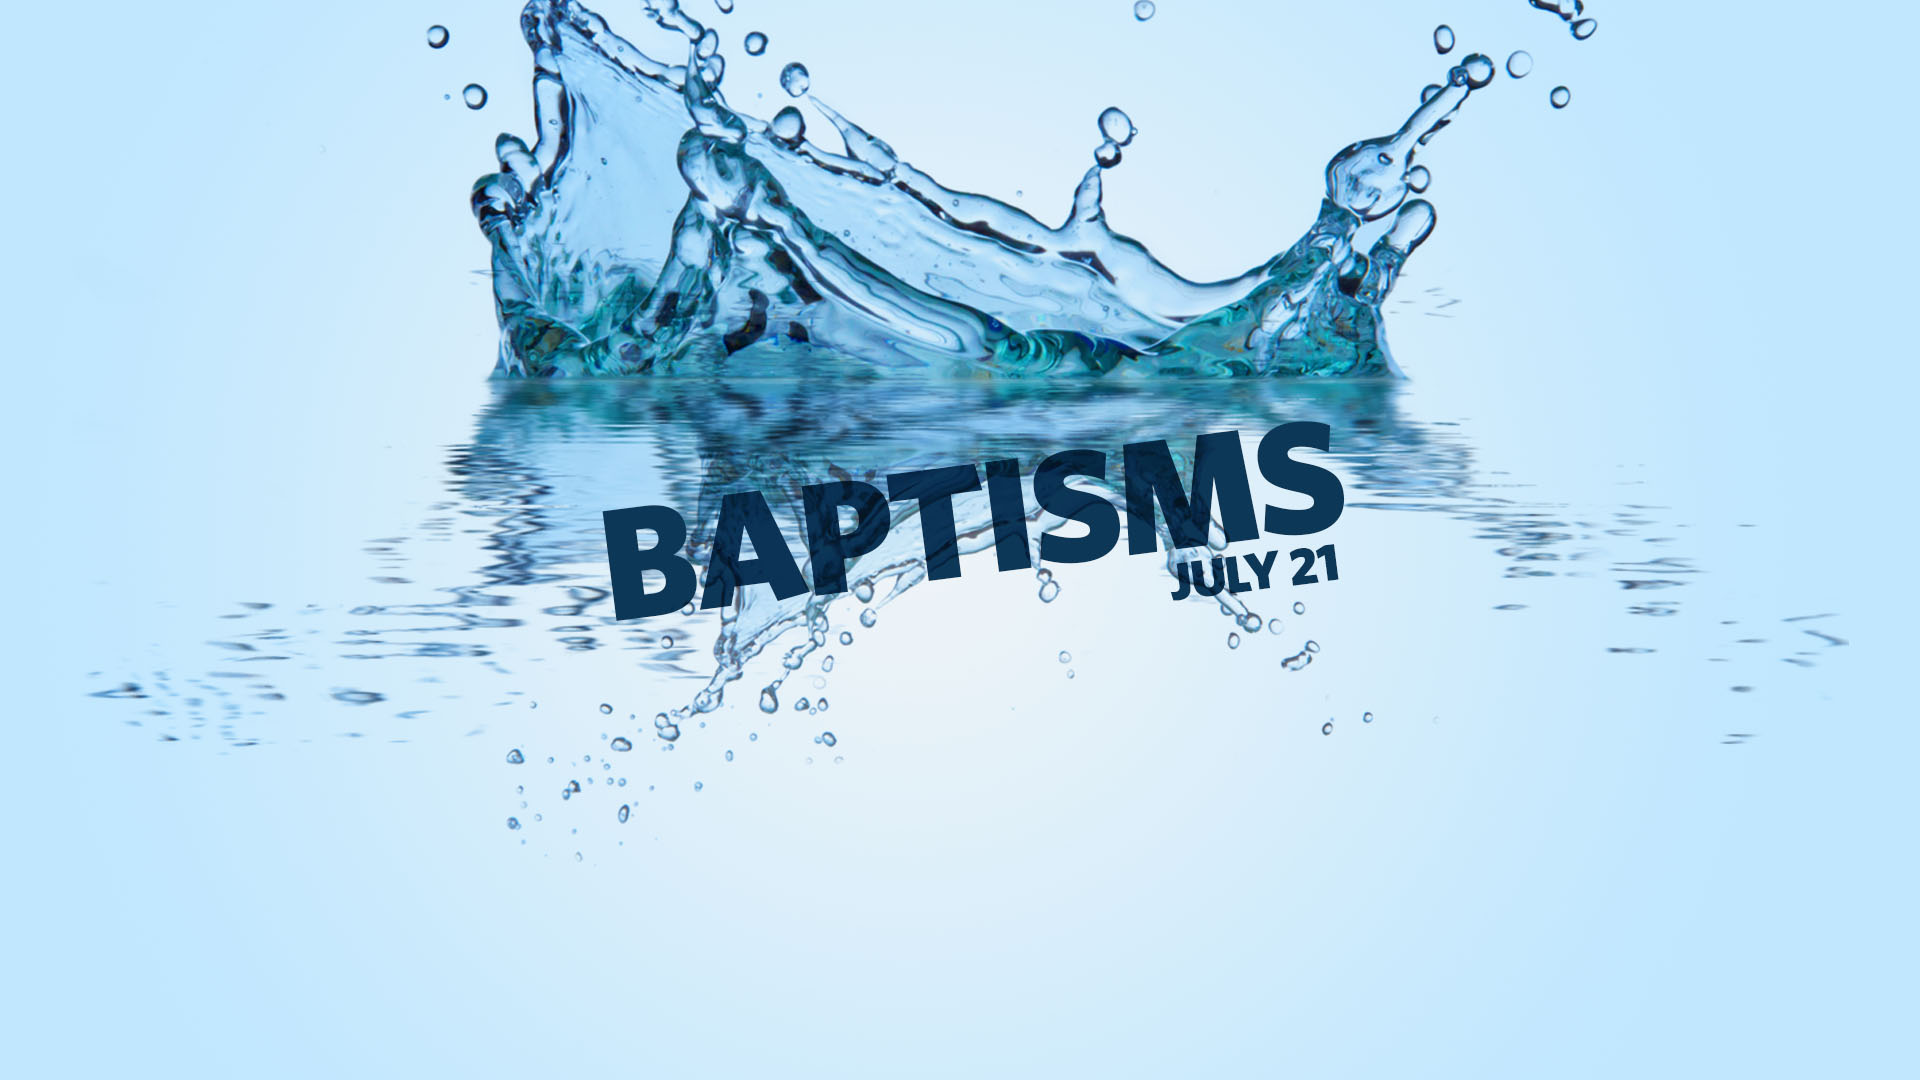 Baptisms-web-feature-7-21.jpg